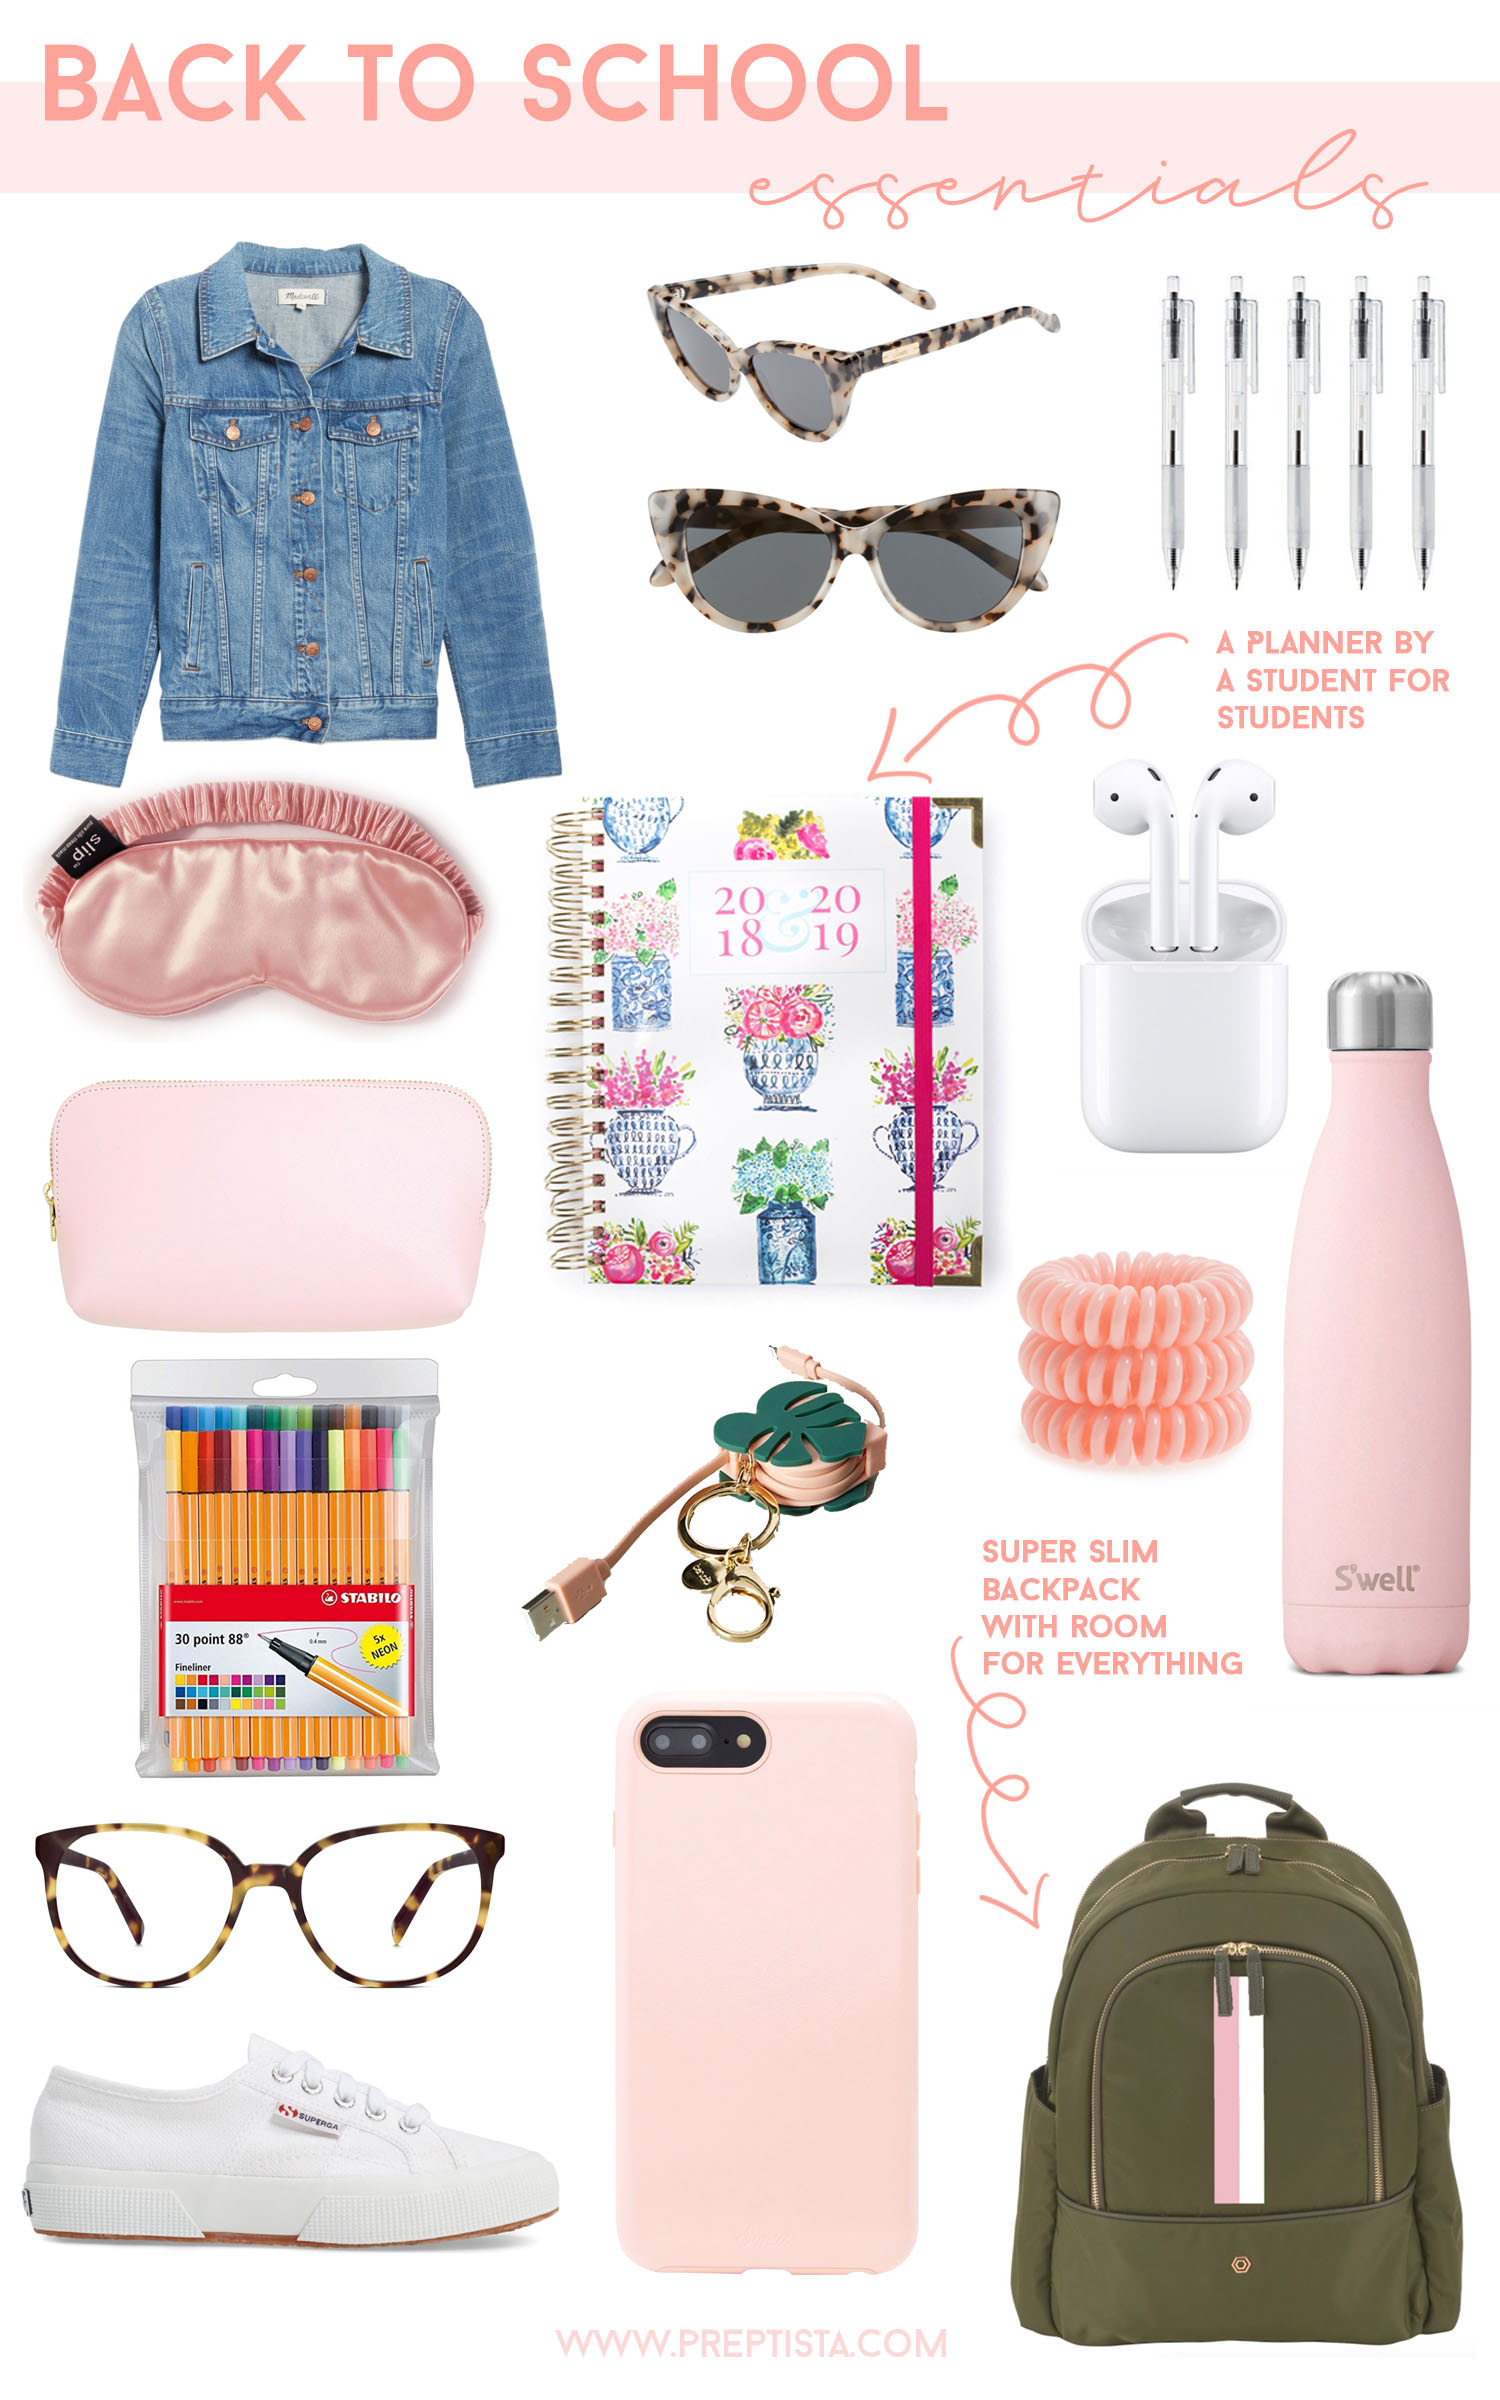 af33be9af232 Back To School Essentials - Preptista